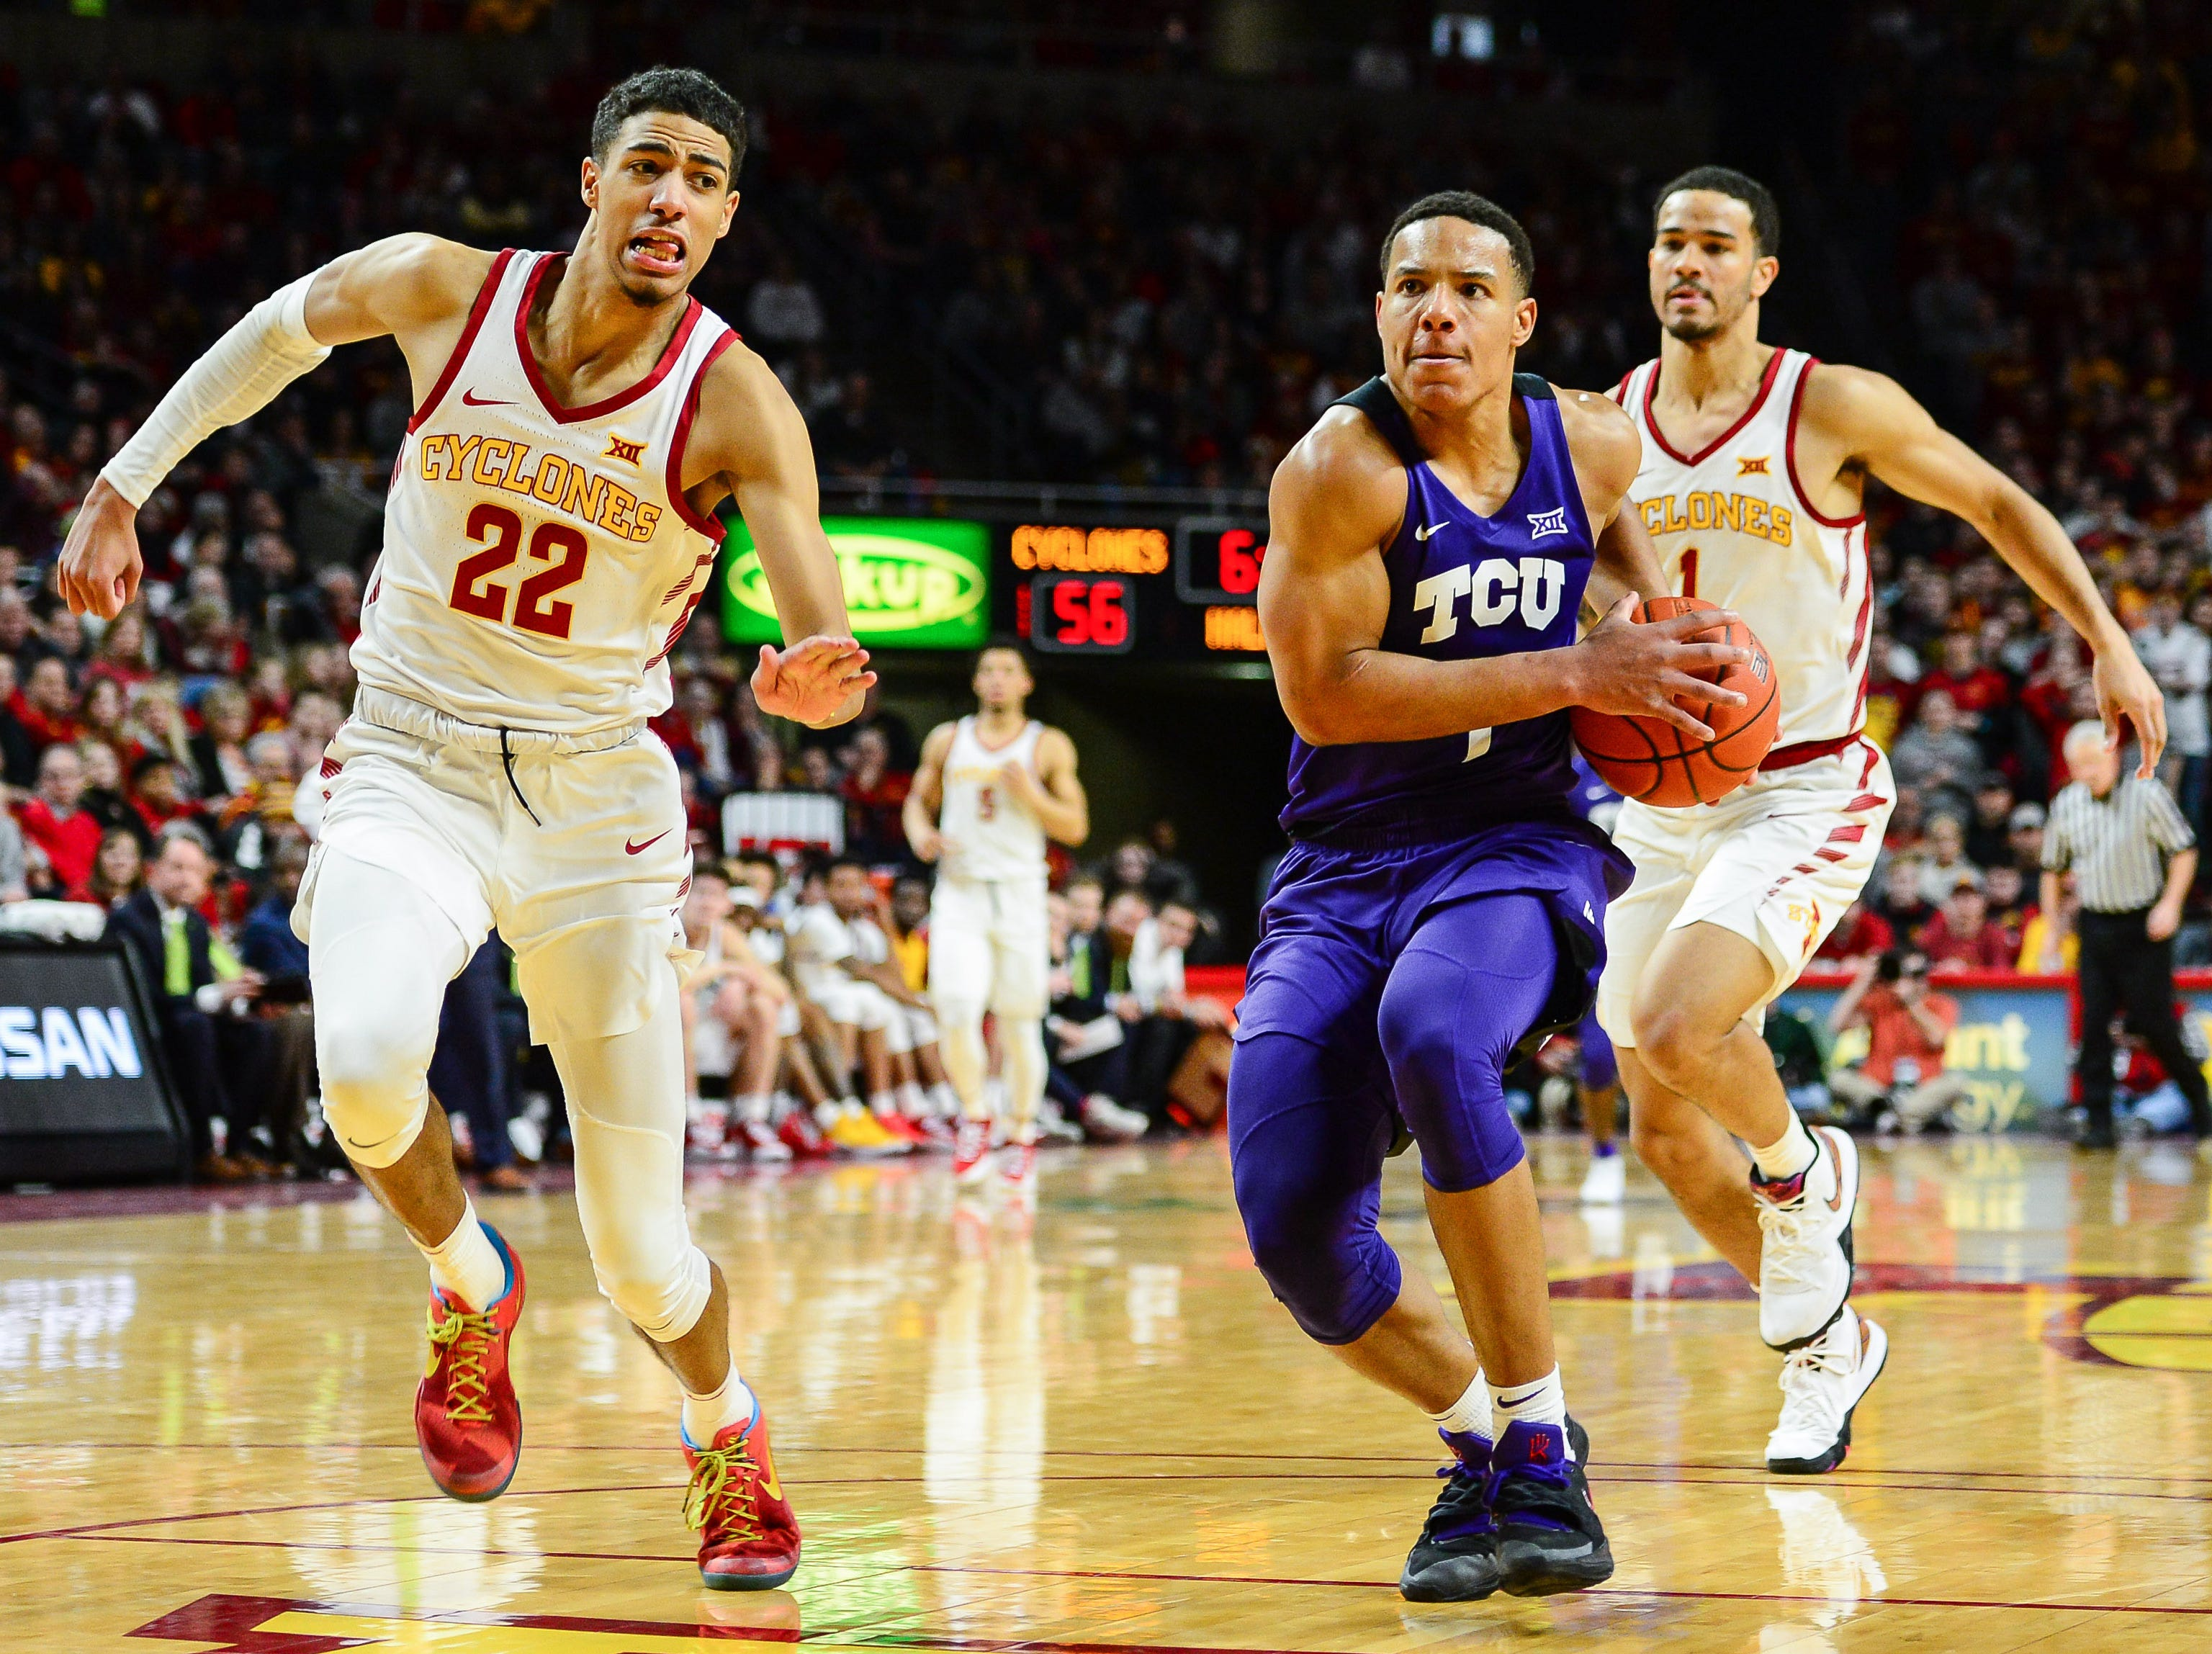 TCU guard Desmond Bane (1) drives to the basket against Iowa State guards Tyrese Haliburton (22) and Nick Weiler-Babb (1) during the second half of their game Saturday, Feb. 9, 2019, at Hilton Coliseum in Ames.